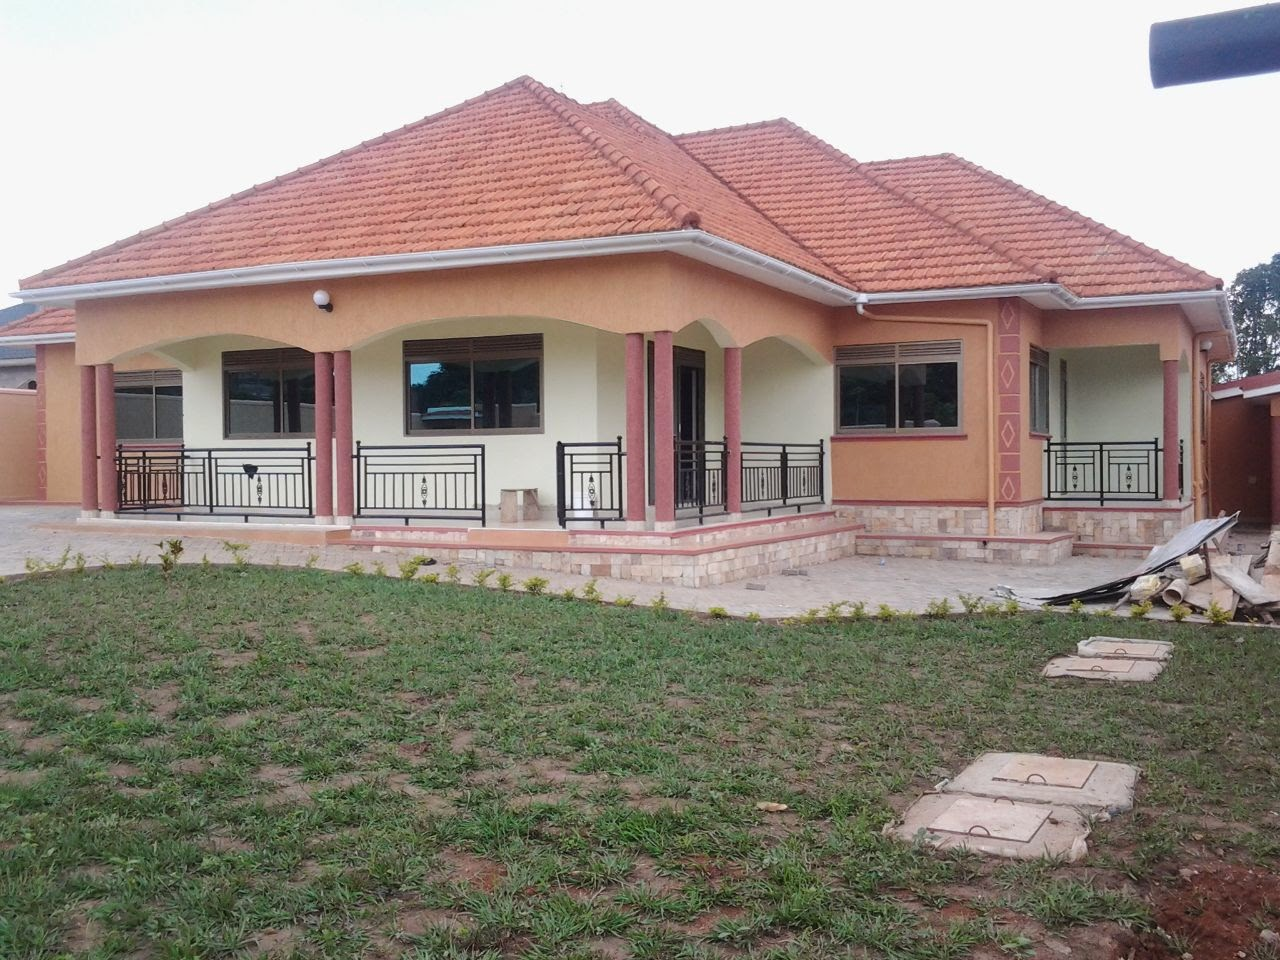 Houses for sale kampala uganda september 2014 for Architect house plans for sale